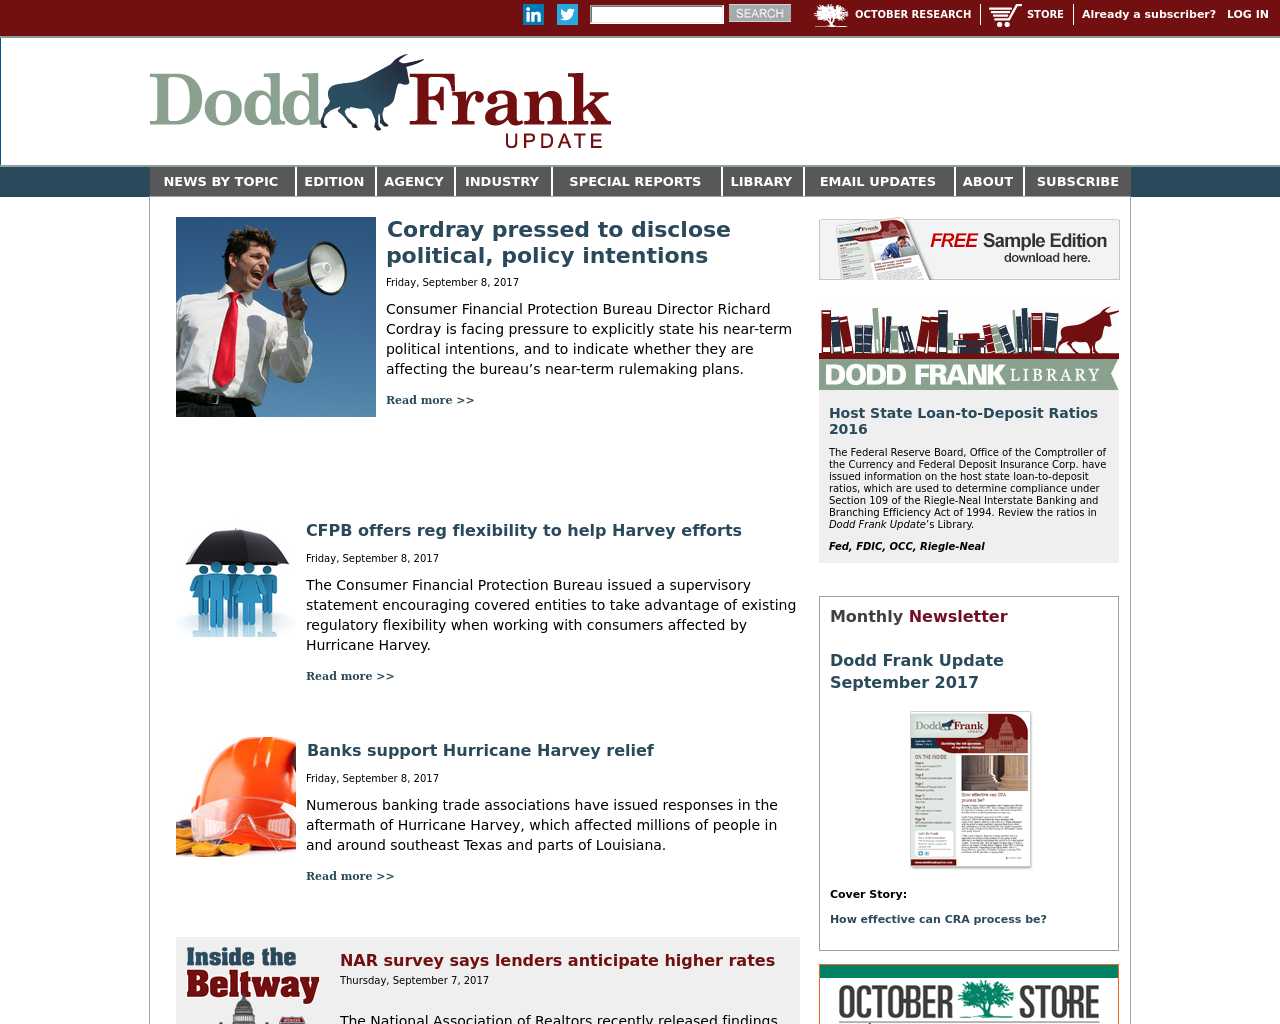 Dodd-Frank-Update-Advertising-Reviews-Pricing